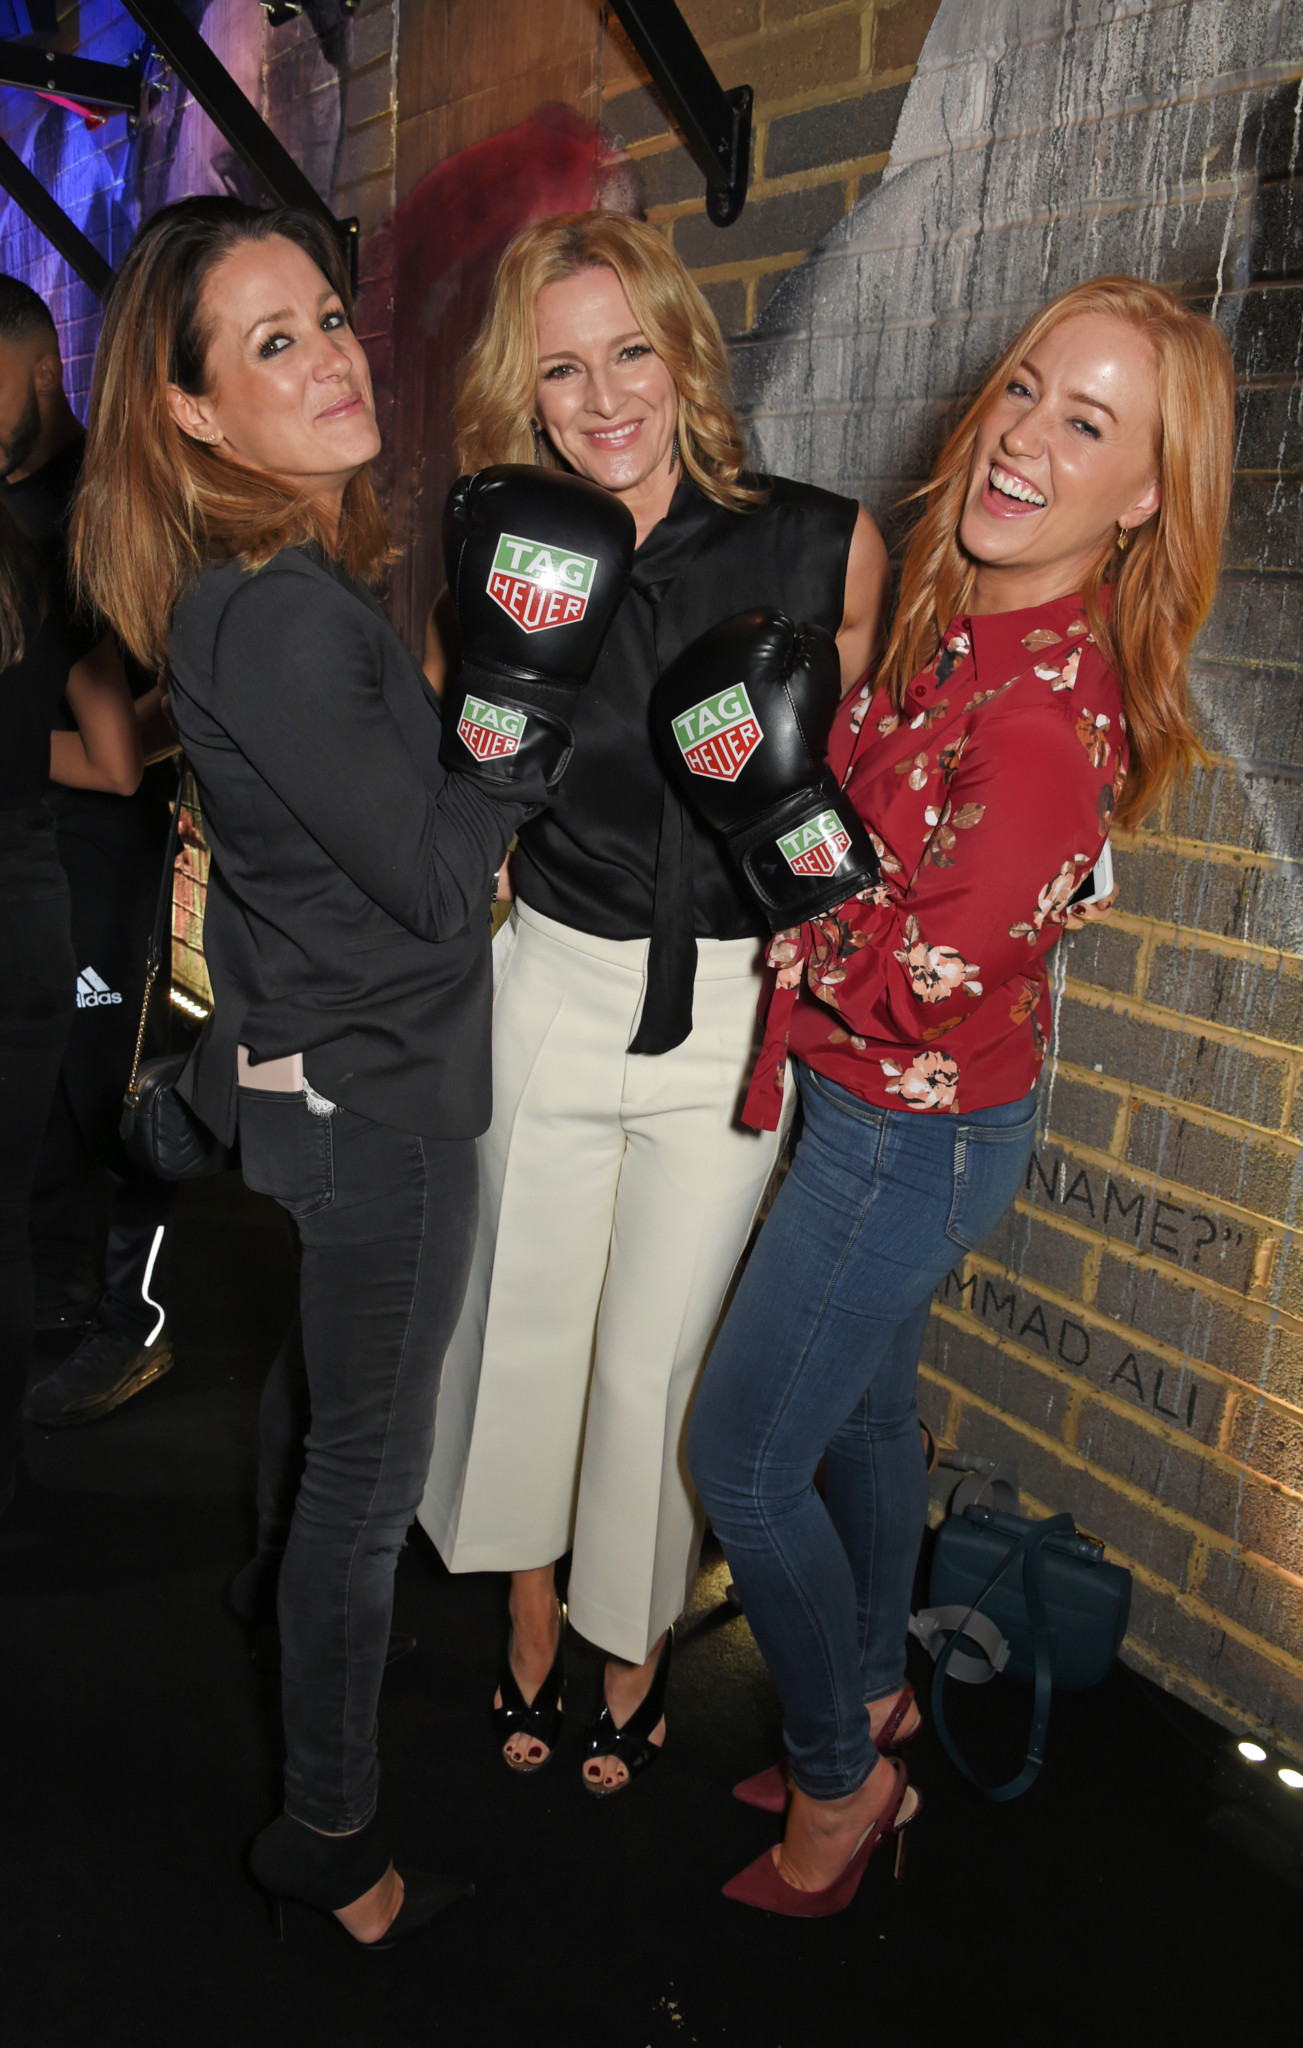 LONDON, ENGLAND - OCTOBER 10:  (L to R) Natalie Pinkham, Gabby Logan and Sarah-Jane Mee attend the launch of the TAG Heuer Muhammad Ali Limited Edition Timepieces at BXR Gym on October 10, 2017 in London, England.  Pic Credit: Dave Benett